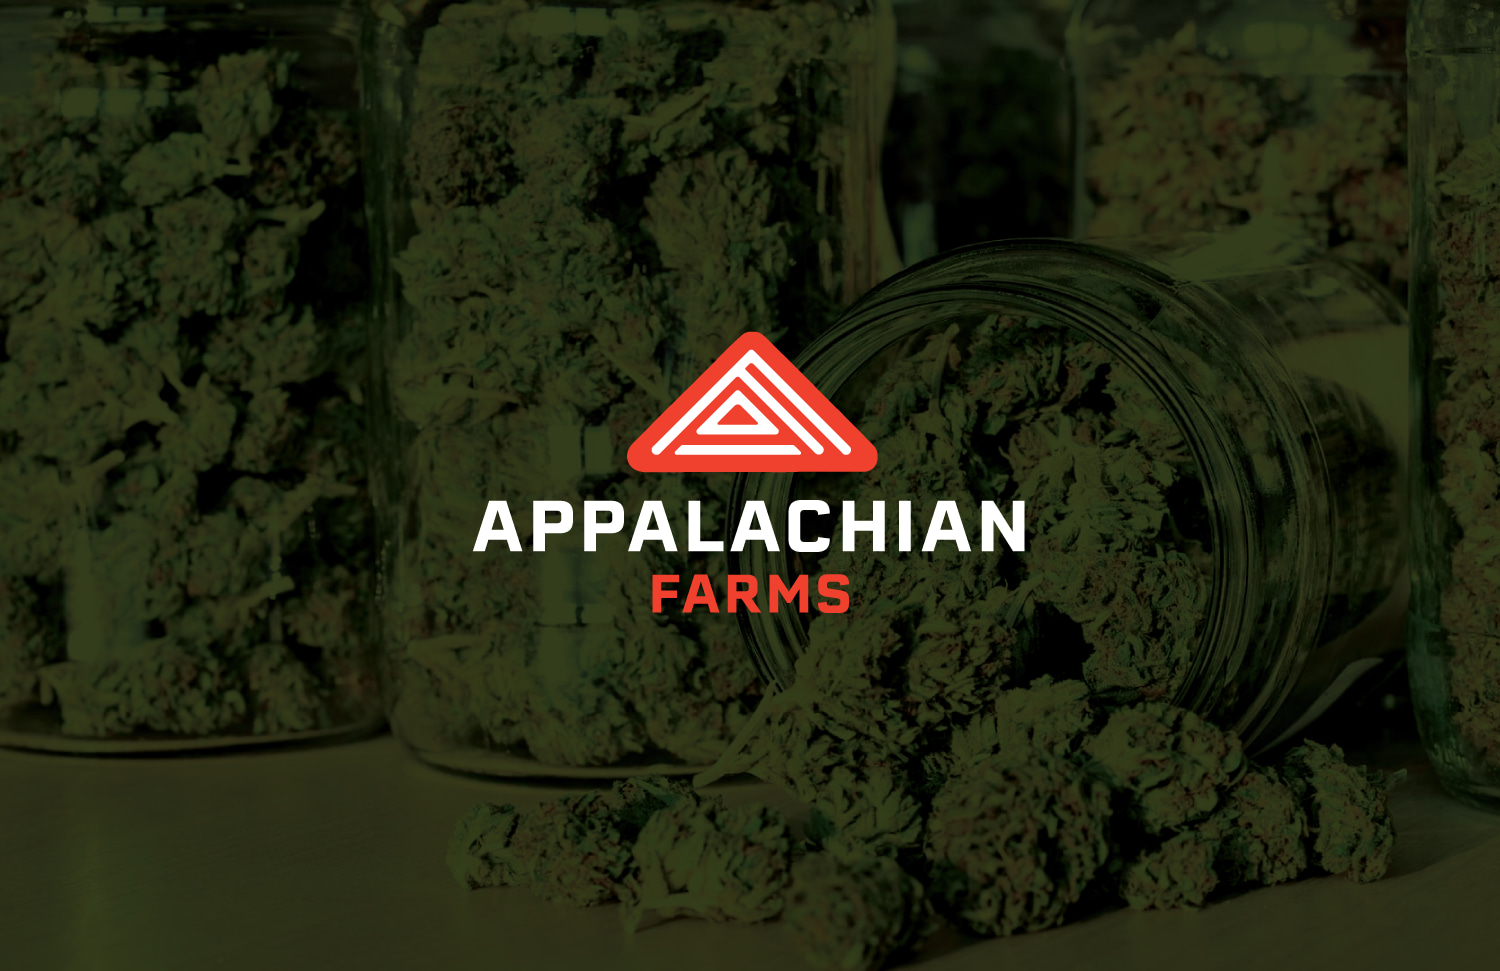 Appalachian Farms Brand Identity